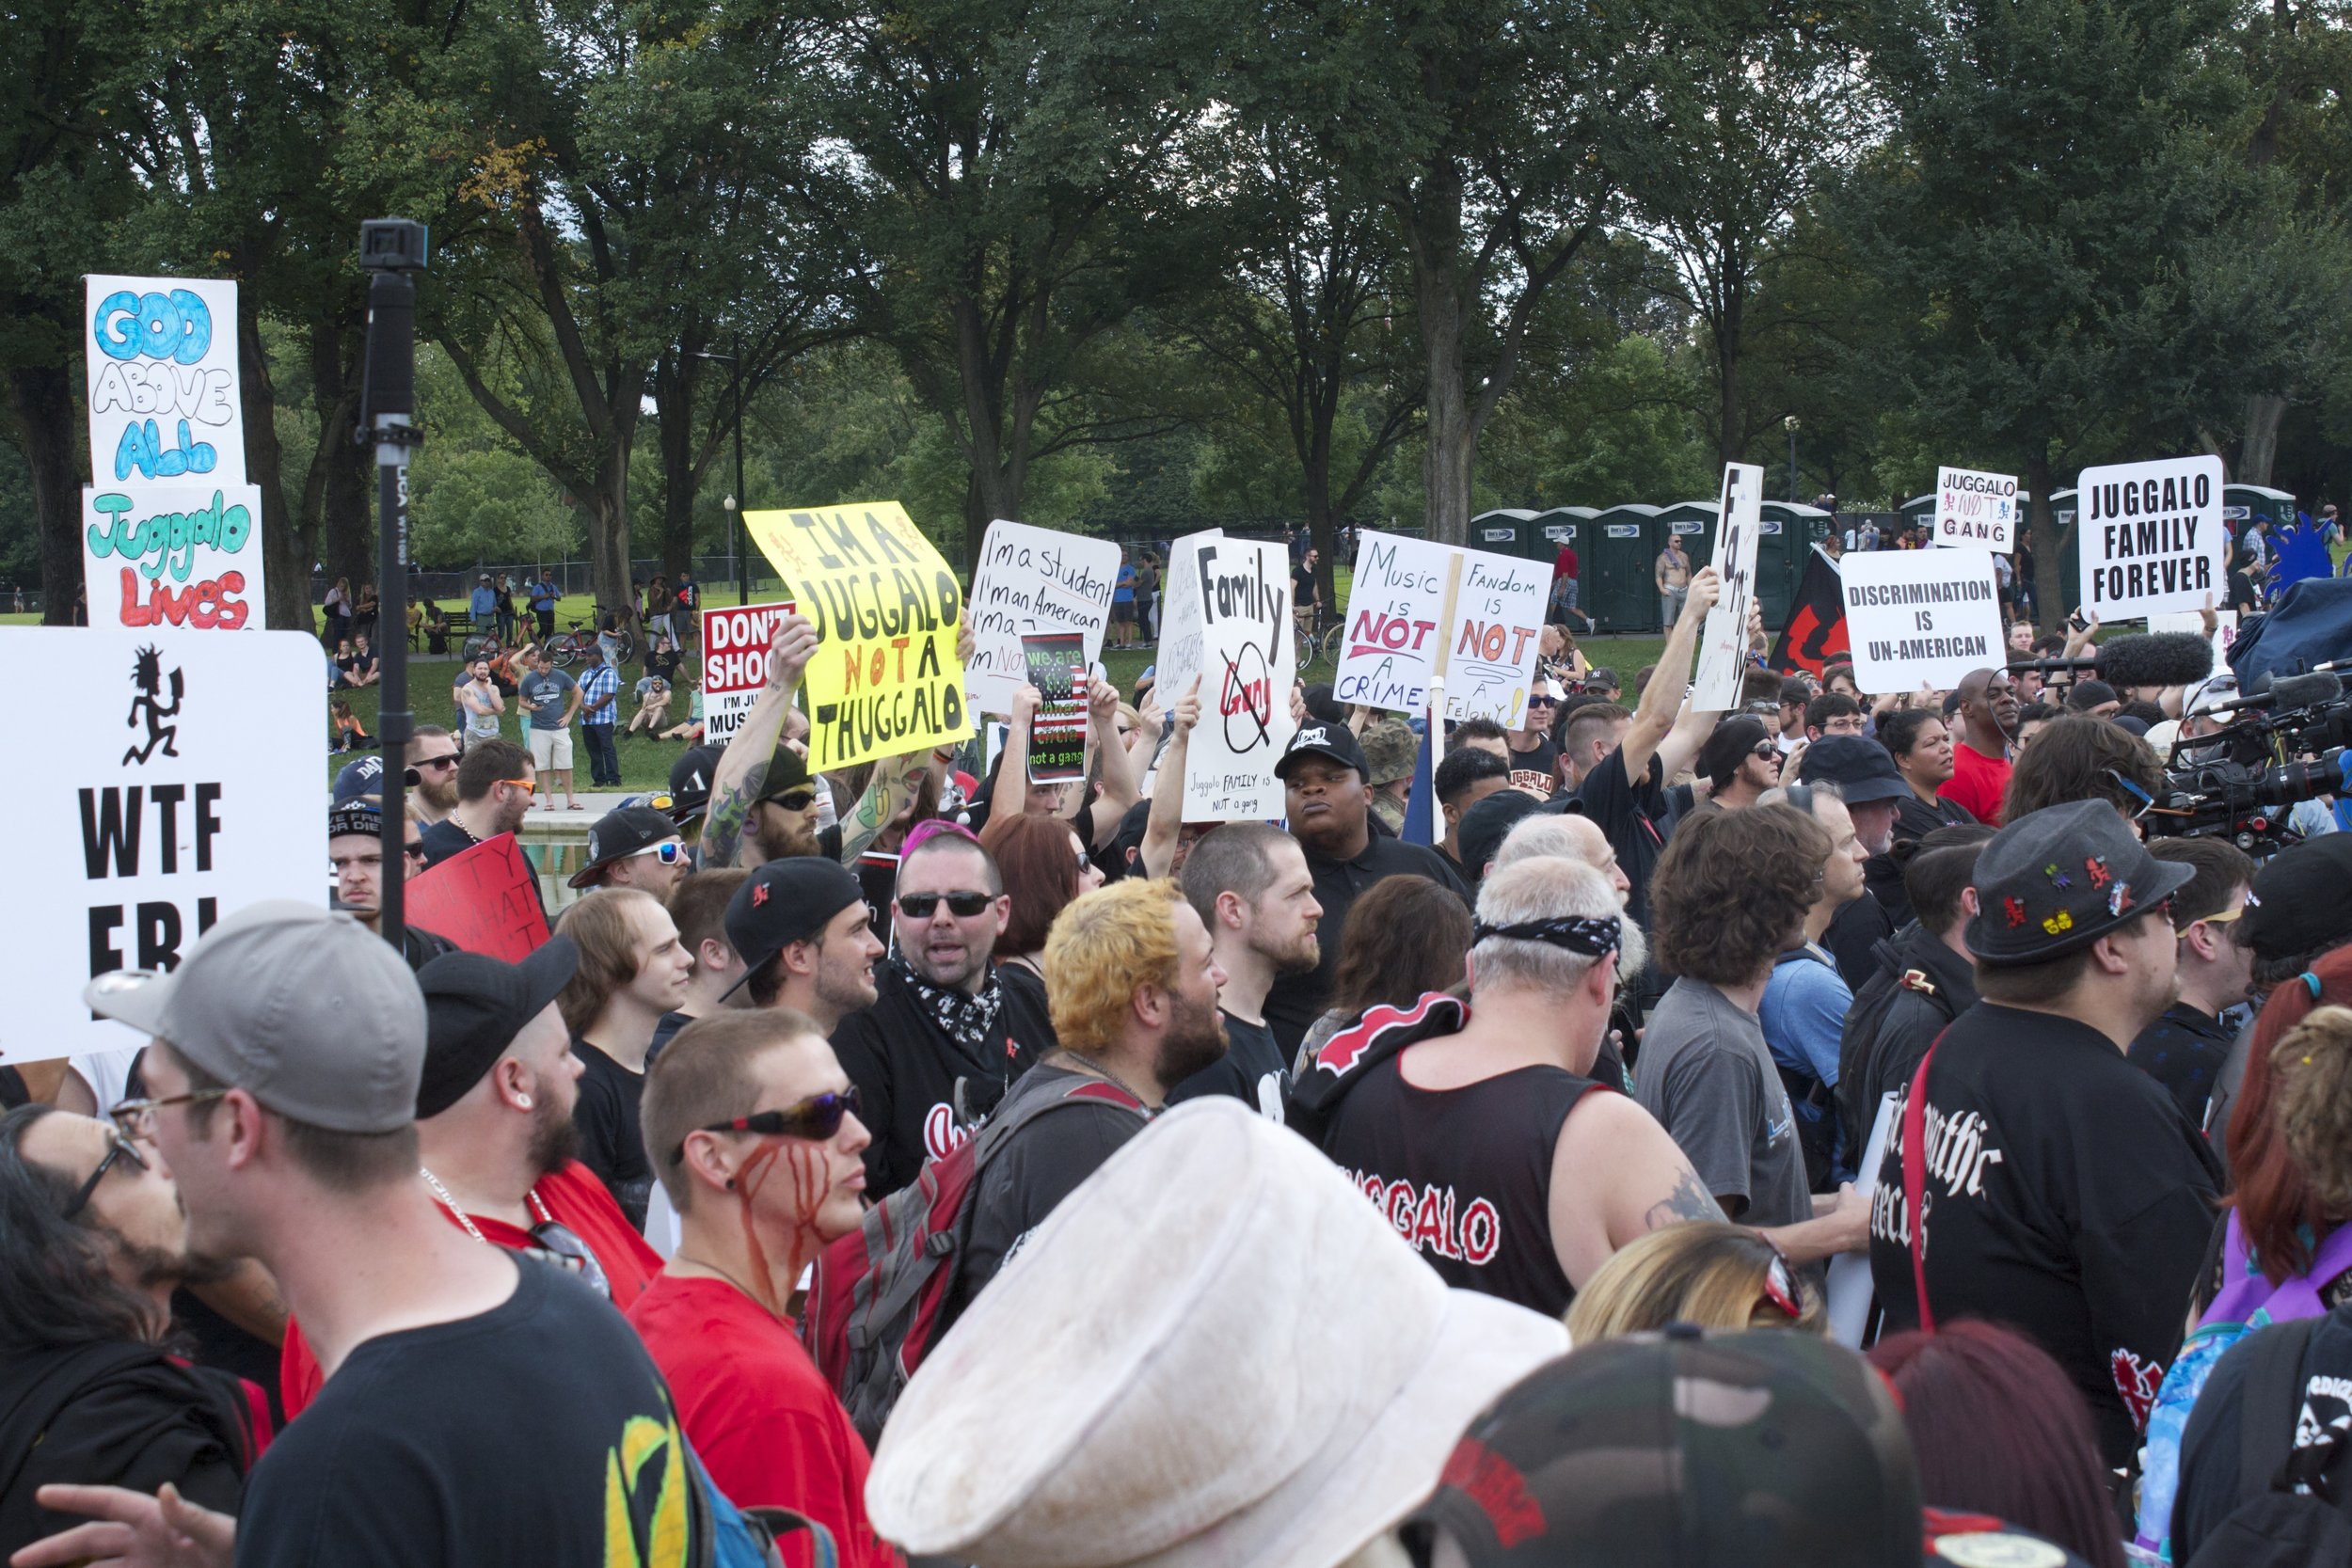 The packed crowd listening to testimonials from Juggalos who'd directly been affected by the gang designation. Photo: MW